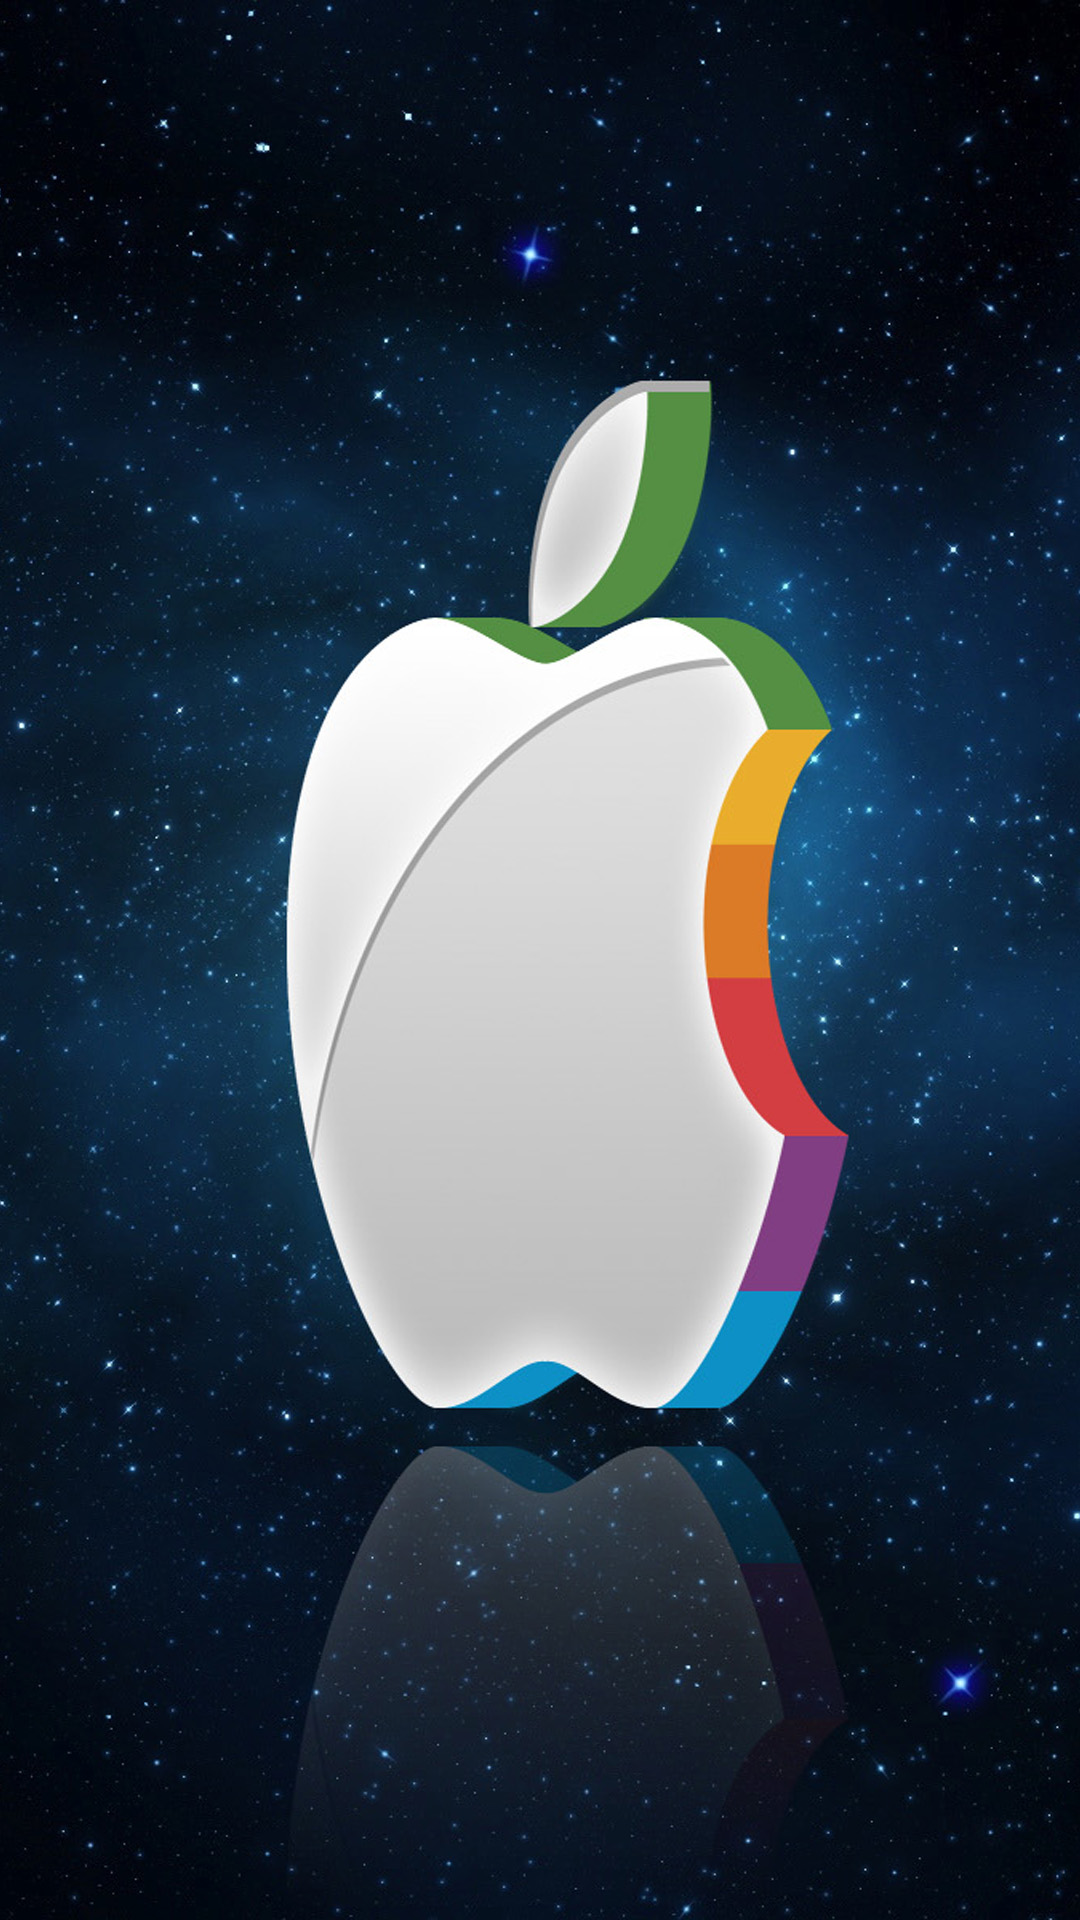 3d Apple Logo In Space Android Wallpaper Android Hd Wallpapers